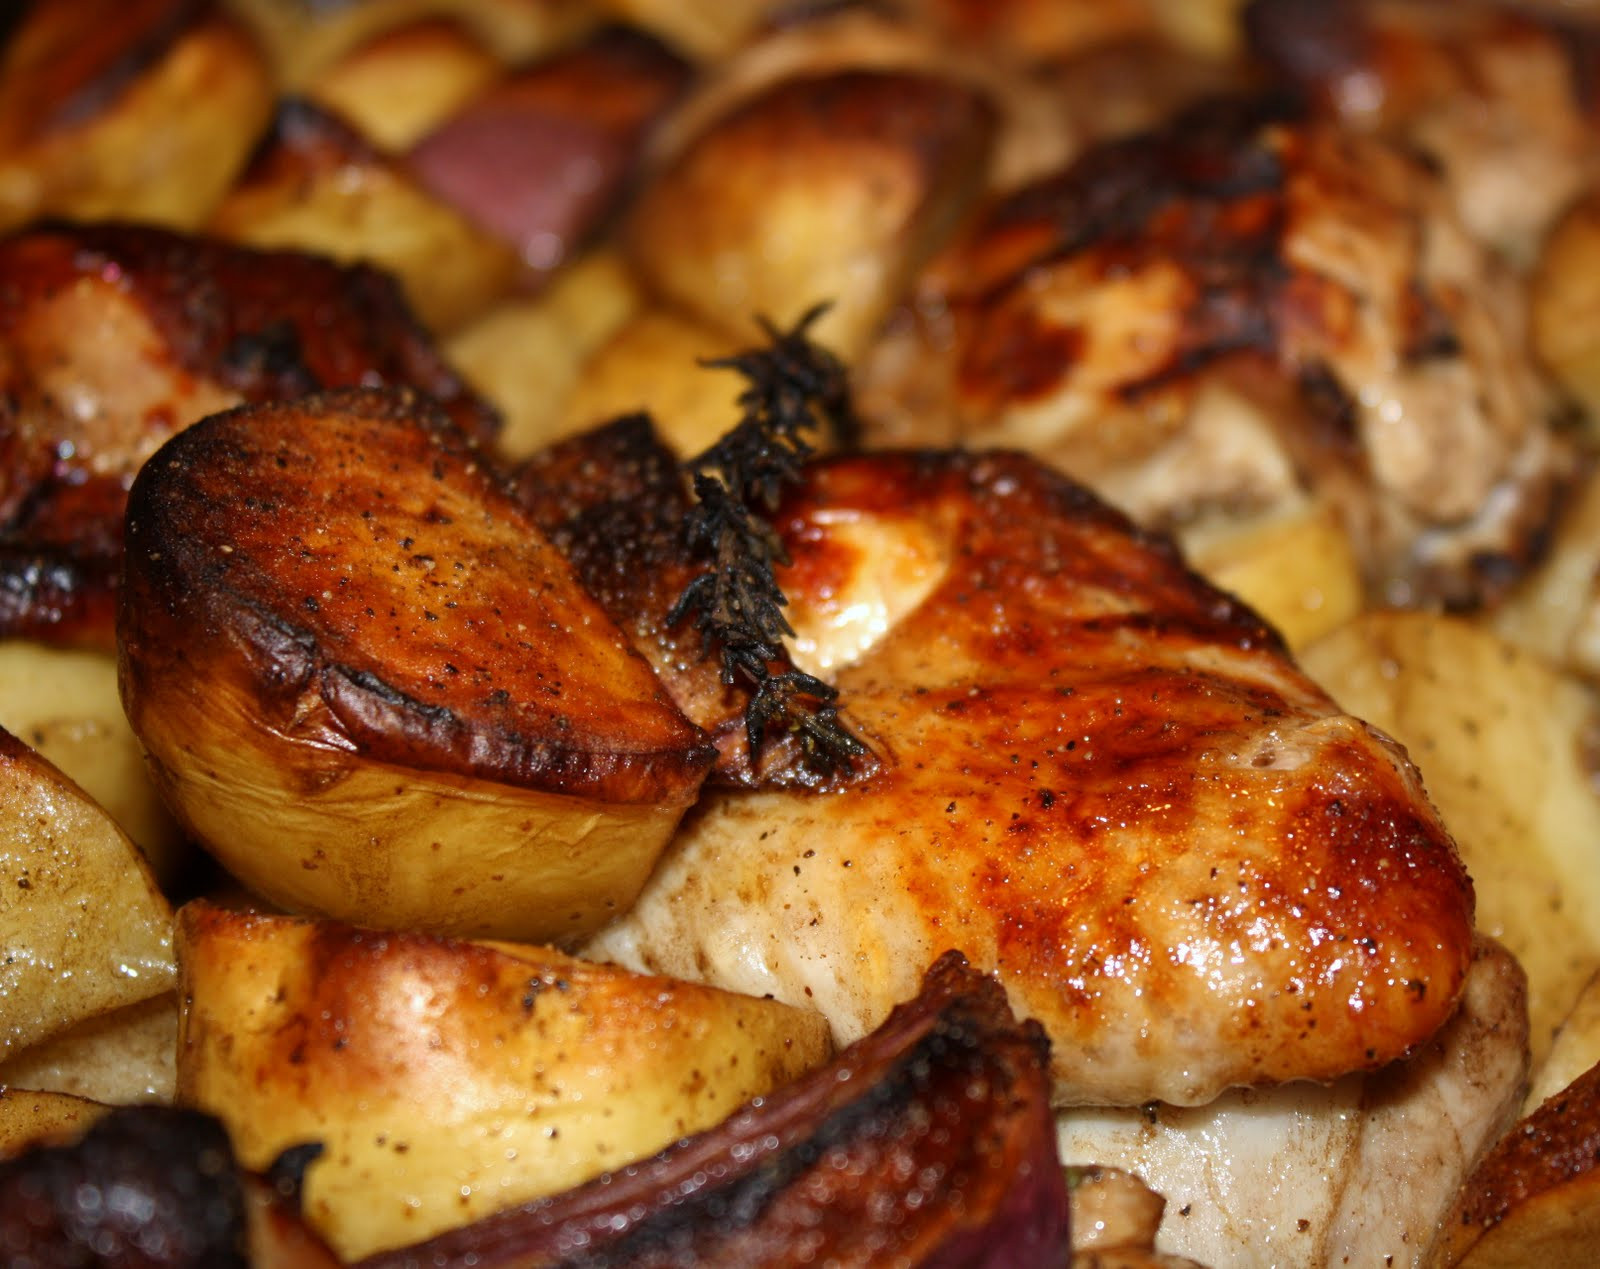 Baked Chicken And Potatoes  what s for dinner baked chicken and potatoes with onion